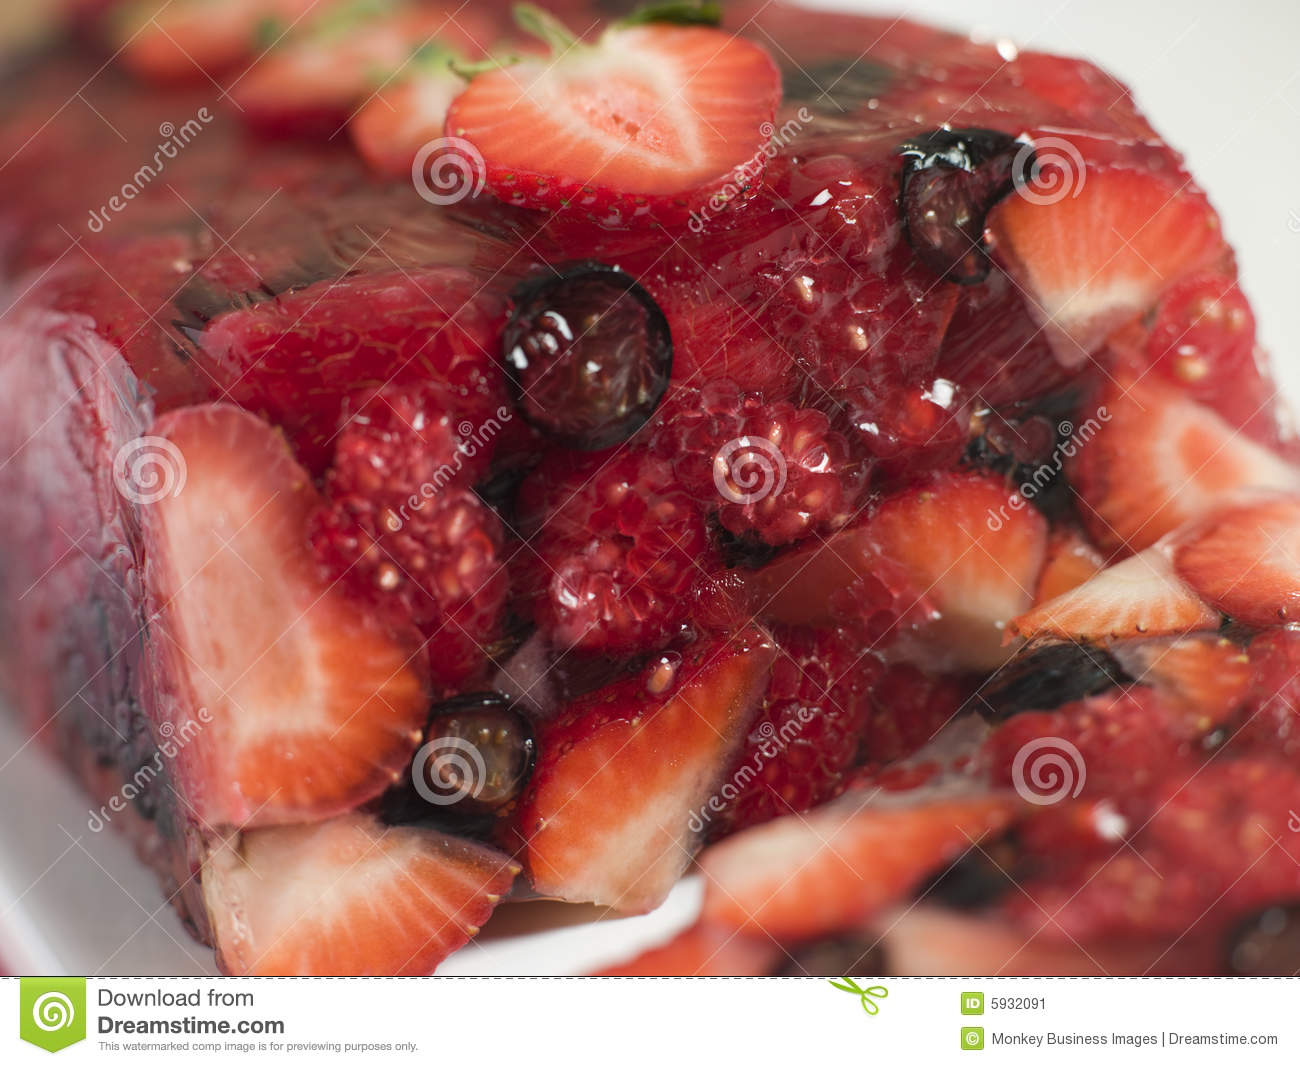 Summer Berry Jelly Terrine Stock Image - Image: 5932091